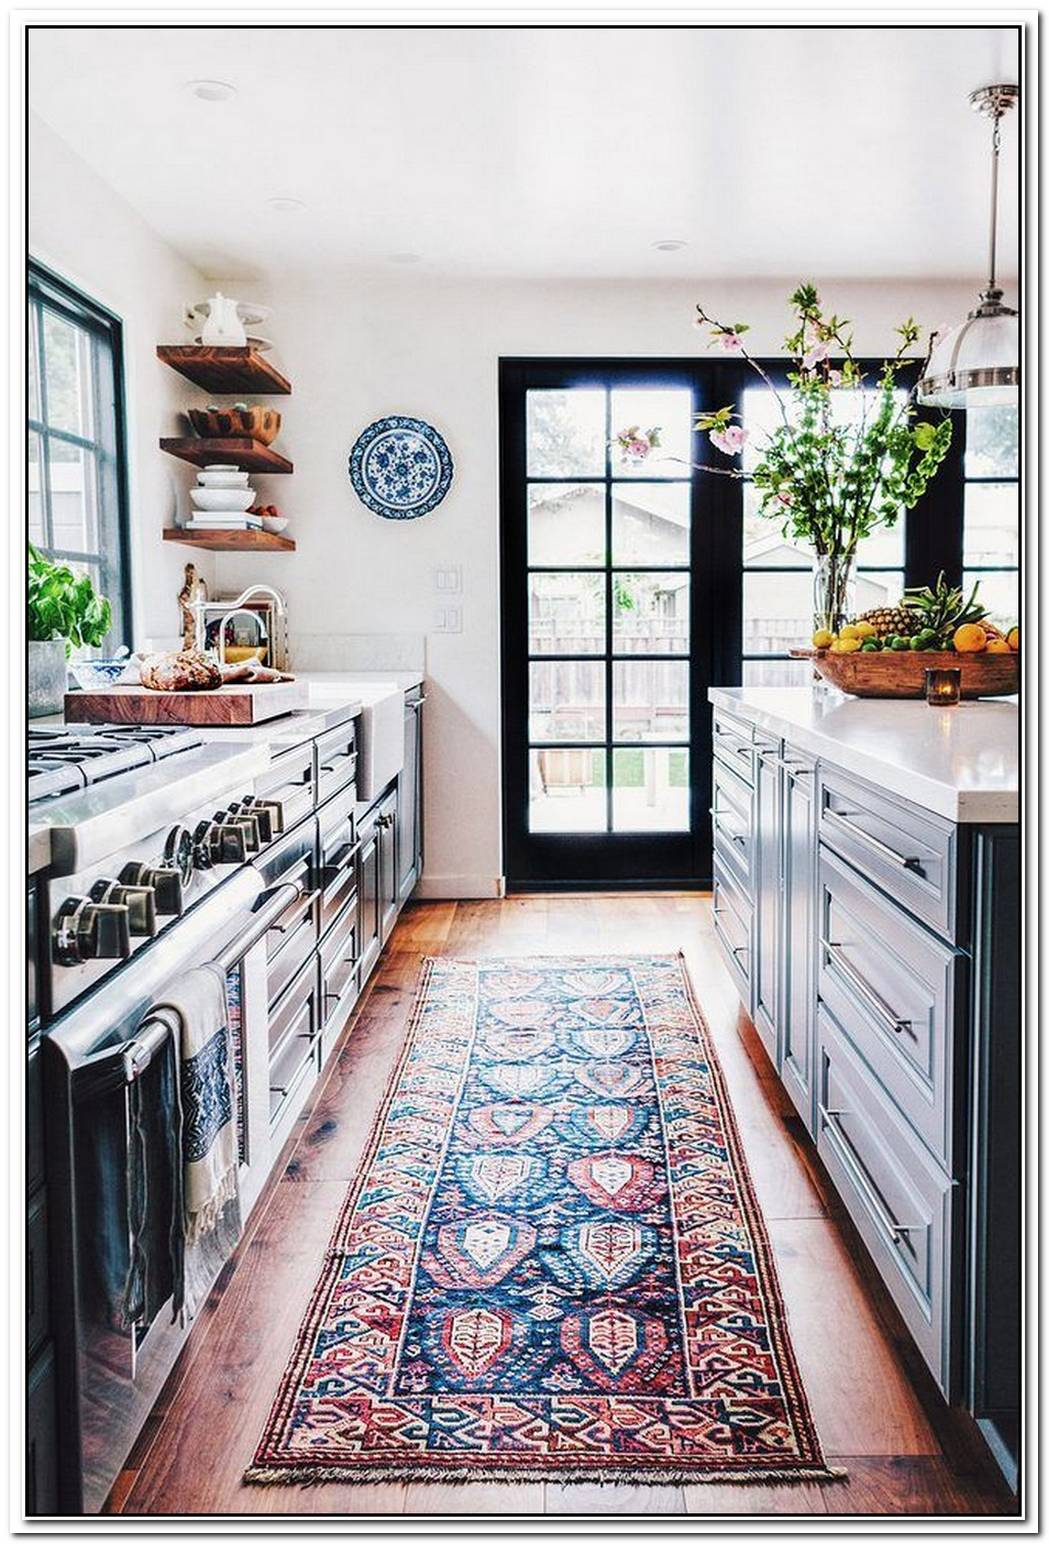 14 Ways To Update An Ugly Rental Kitchen